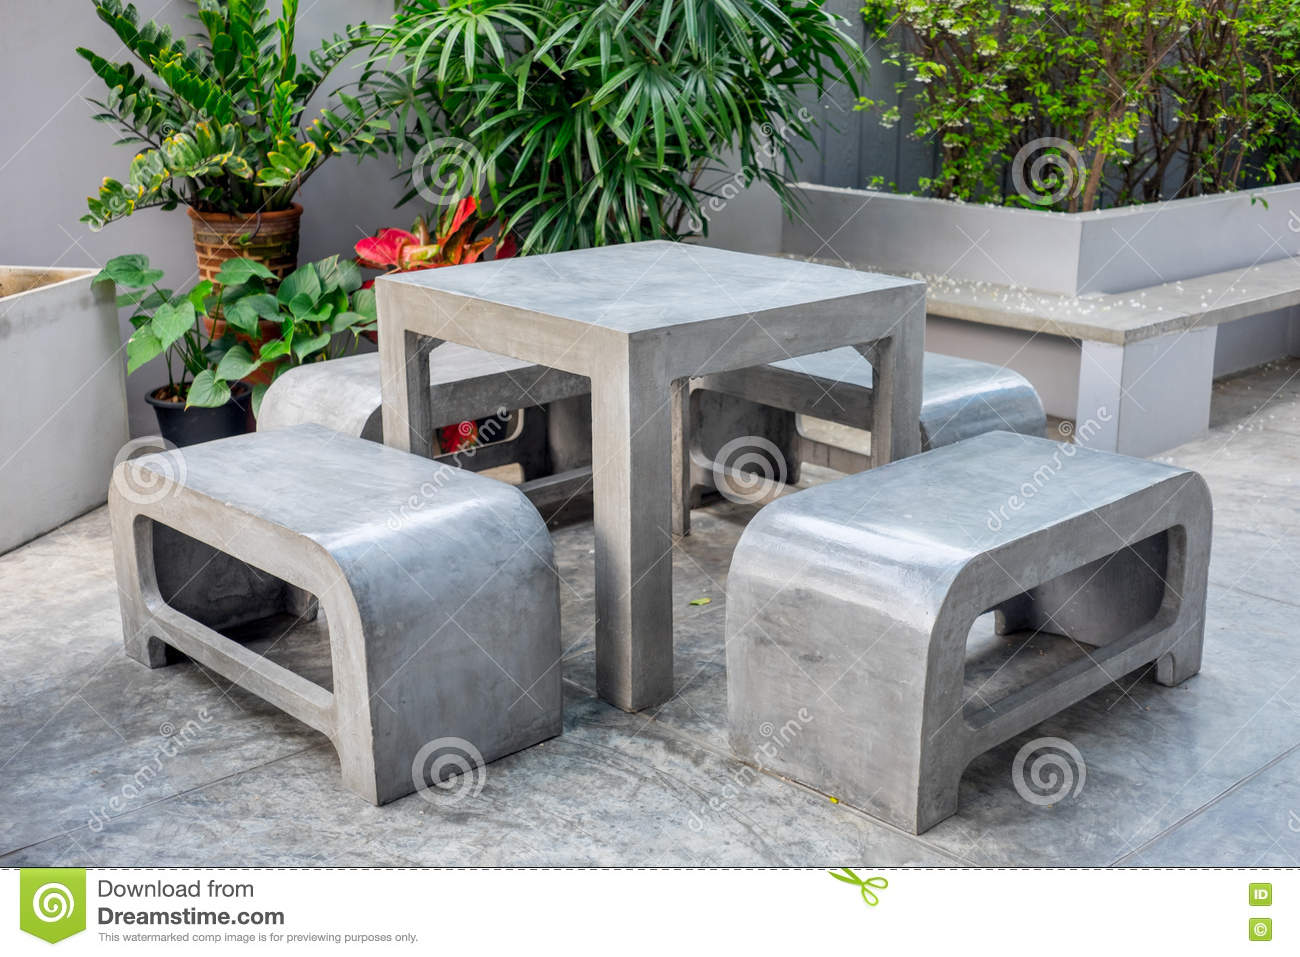 Concrete Rebar Chairs Concrete Outdoor Furniture Set In Small Garden Stock Photo Image